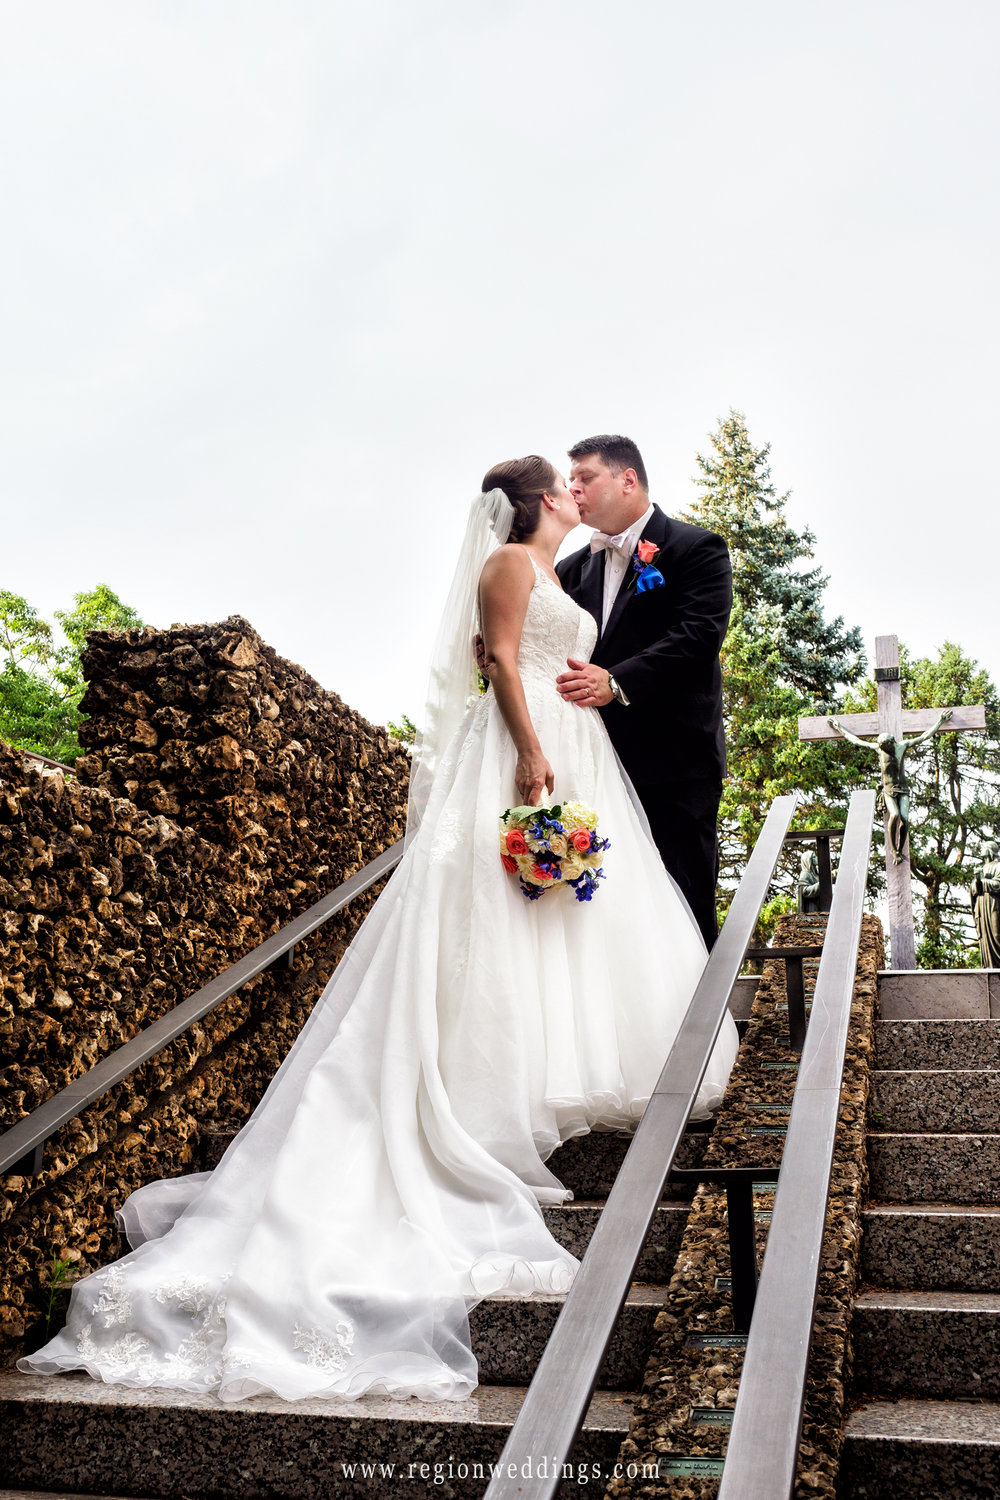 The bride and groom kiss on an outdoor staircase at Carmelite Shrine in Munster, Indiana.